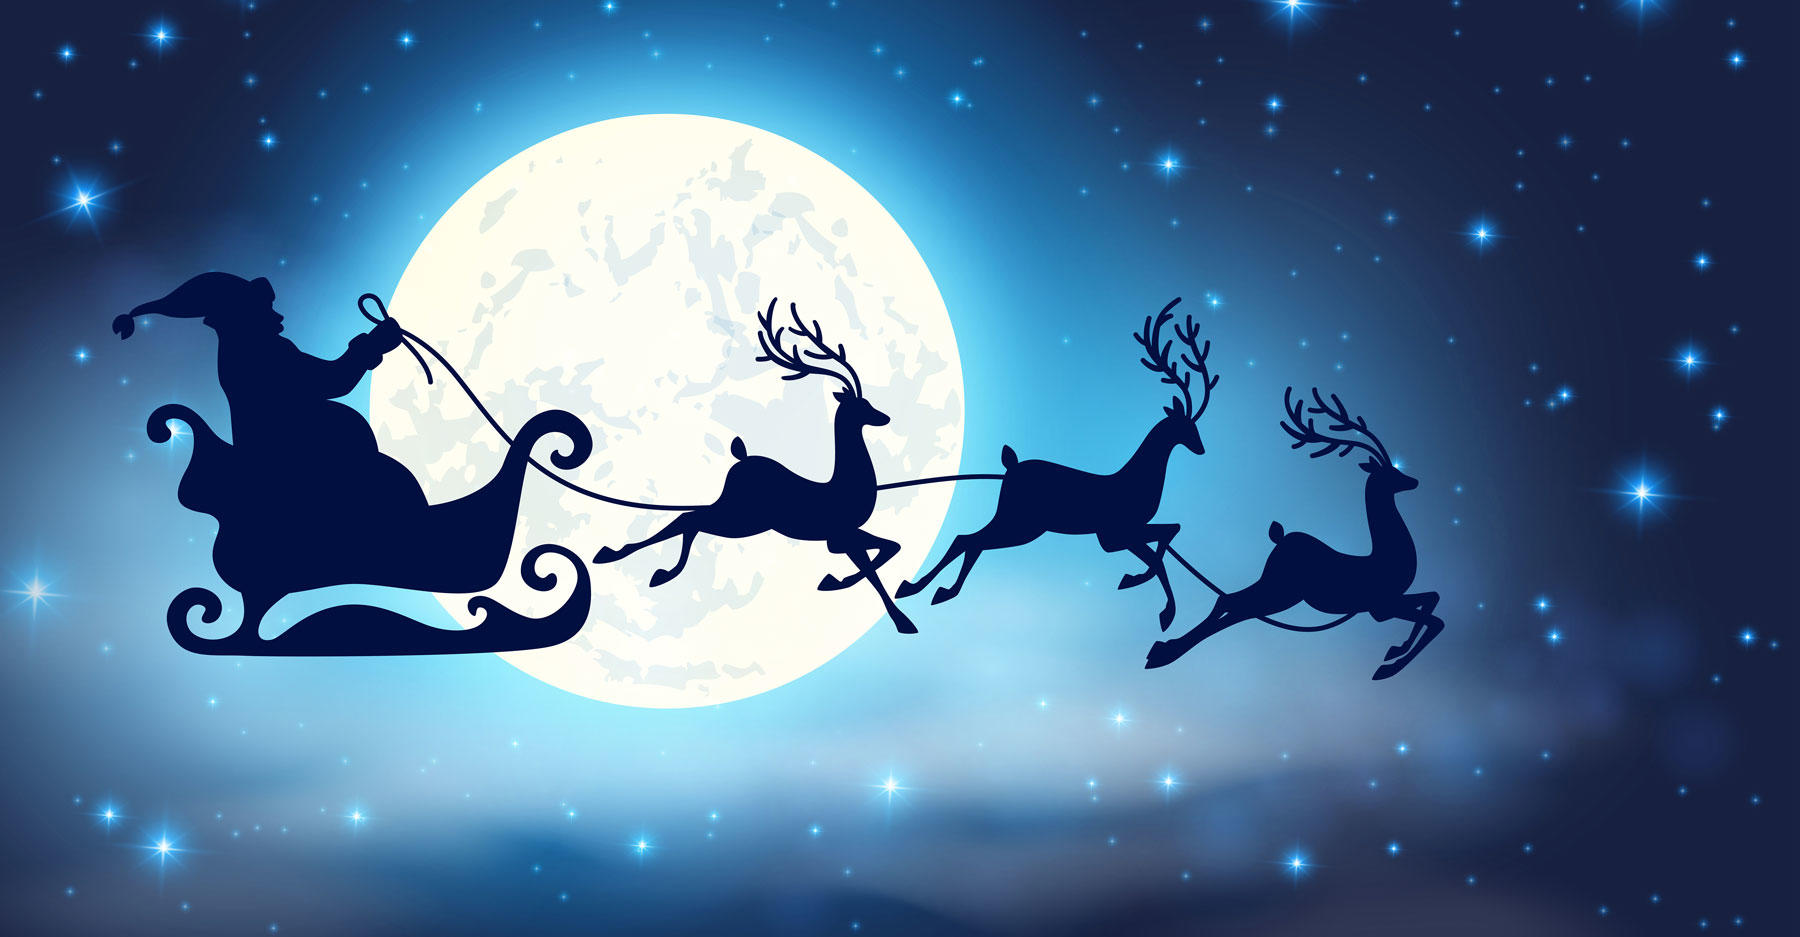 2017 December Full Moon >> Sole Christmas Full Moon for Six Decades Rises This Year | Discovery Blog | Discovery